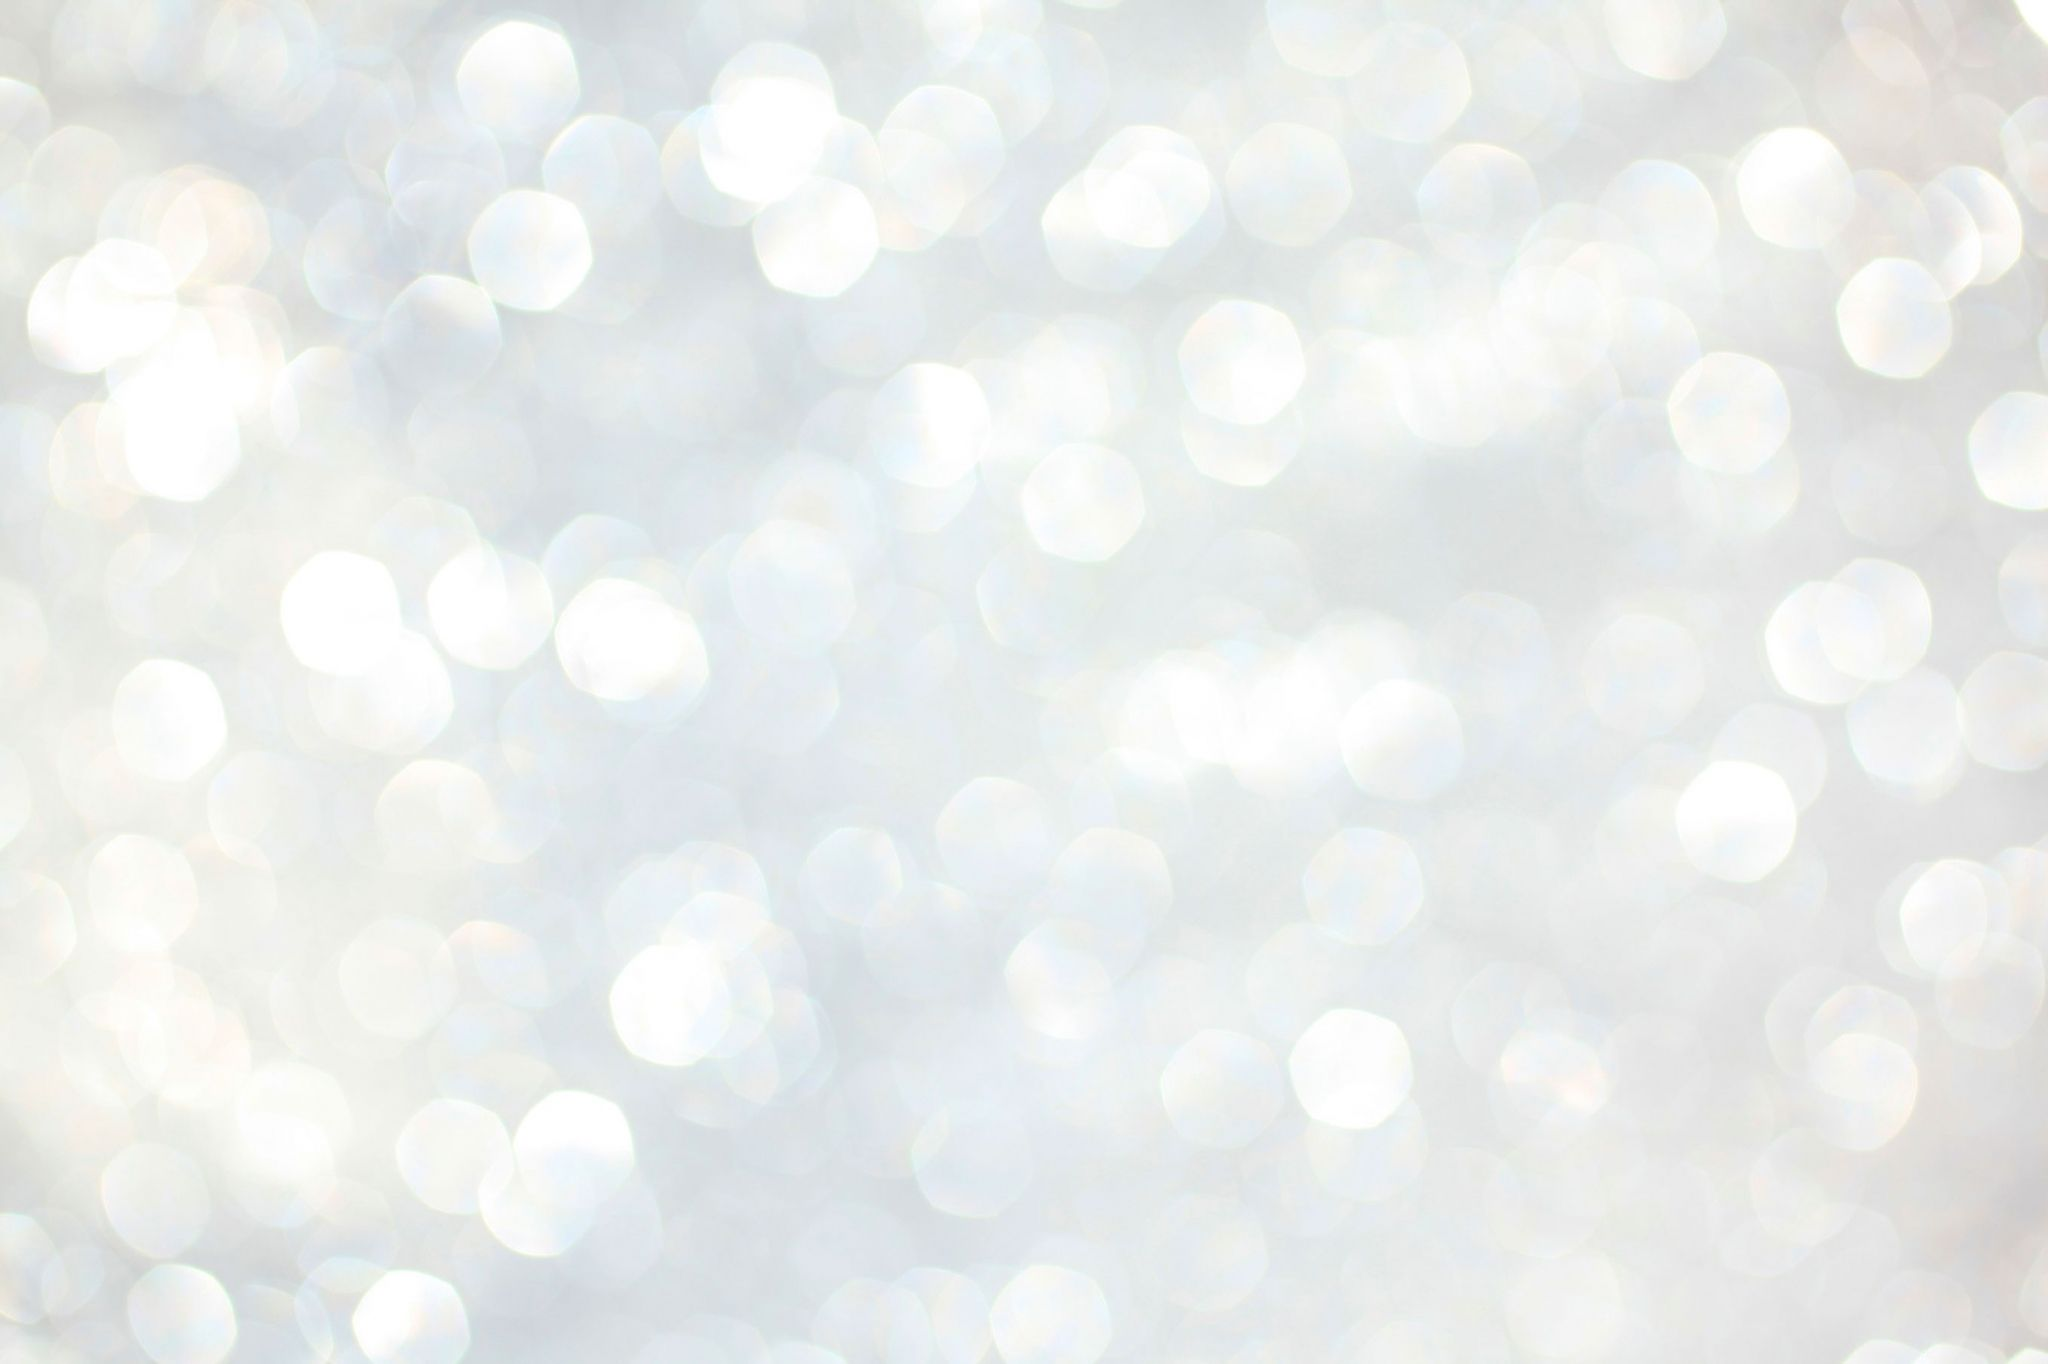 Hd wallpaper tap - Tap Image For More Iphone Glitter Wallpaper Glitter Wallpaper